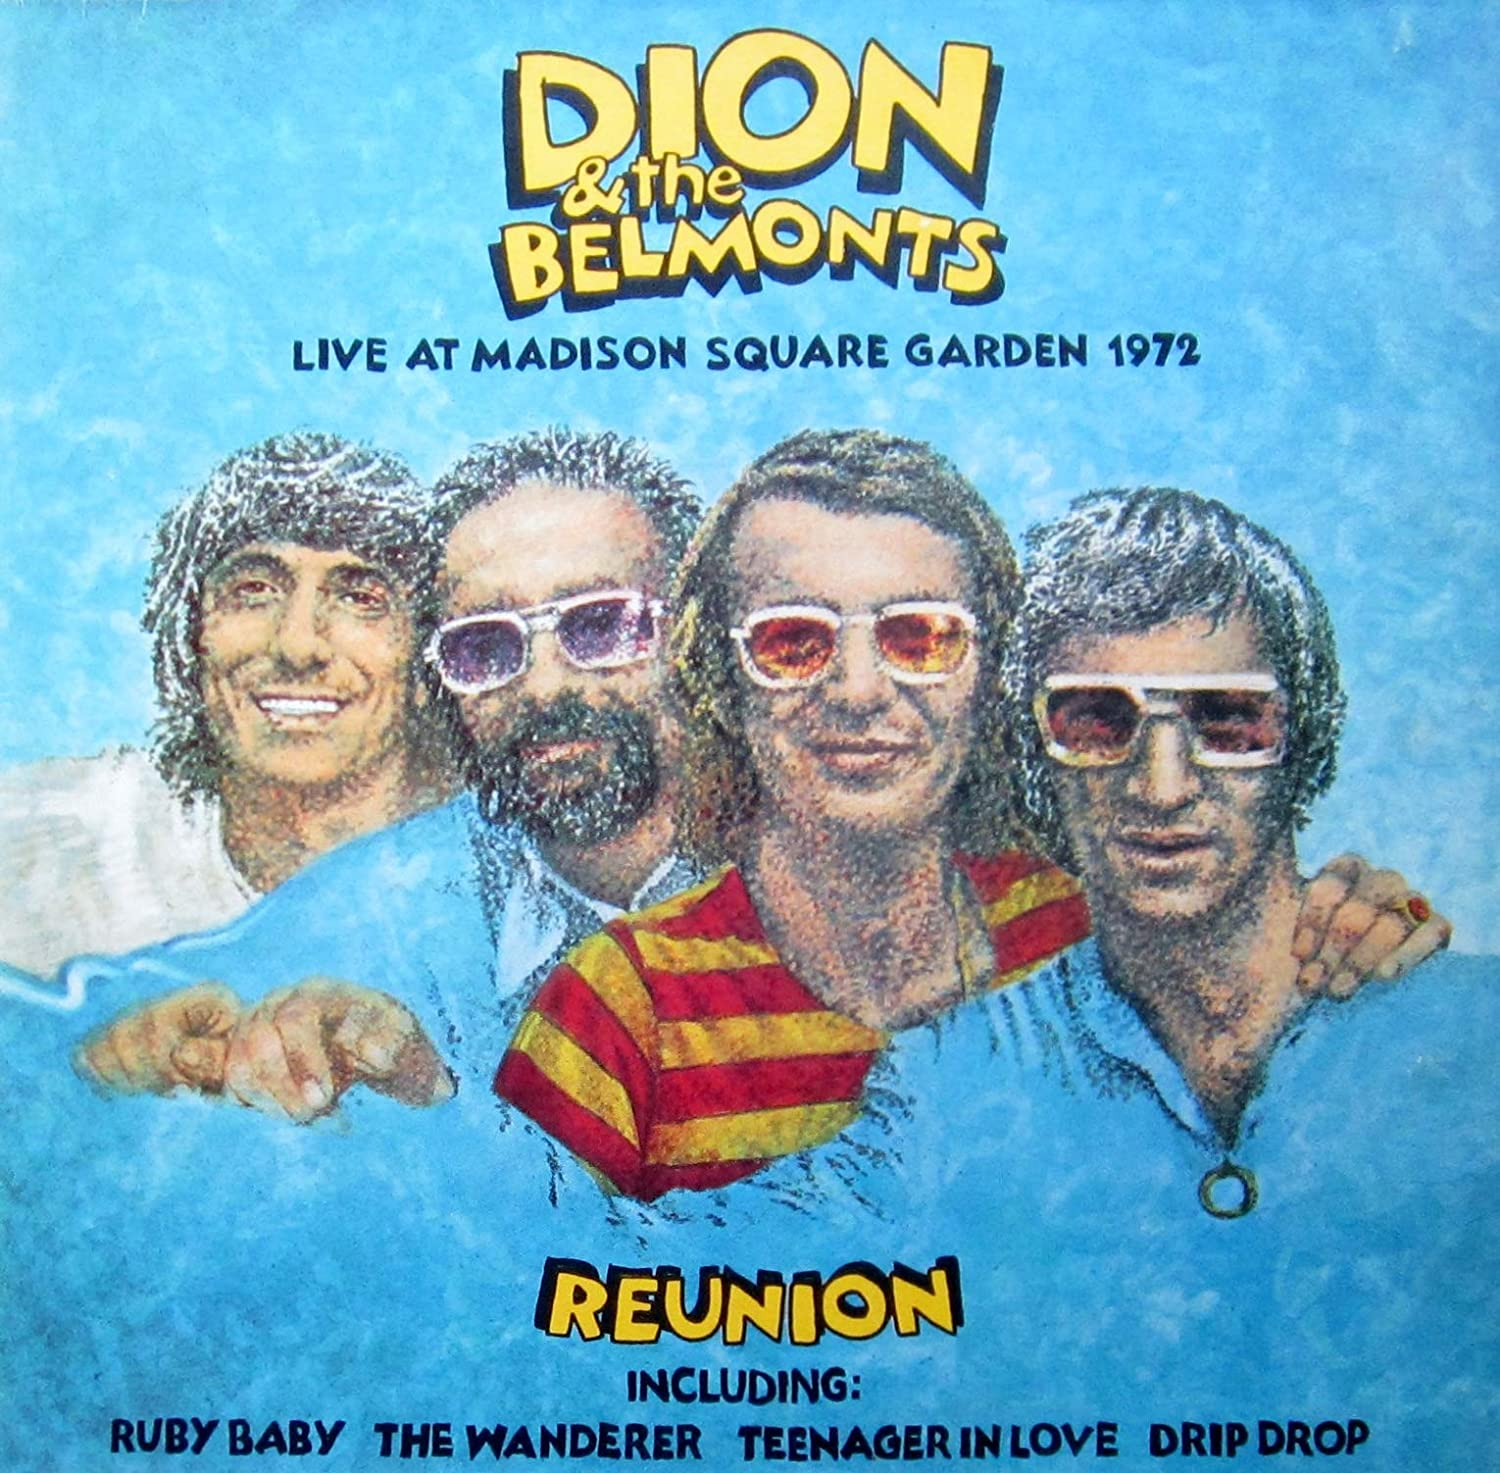 Dion & The Belmonts - Live At Madison Square Garden 1972 - Warner Bros. Records - K 46208